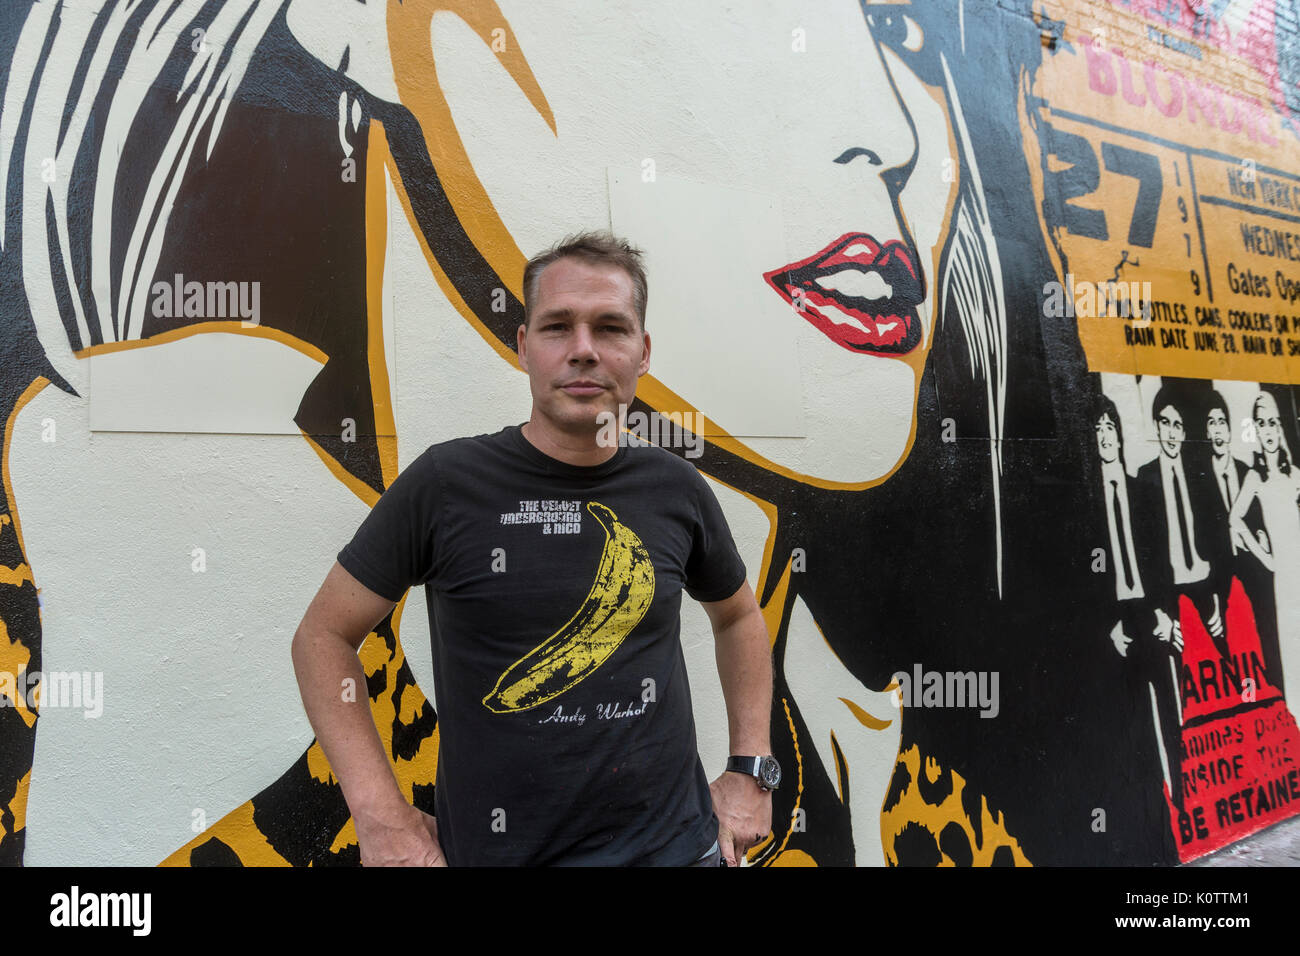 """New York, USA. 23rd Aug, 2017. Shepard Fairey, and his newly completed mural. The mural features Debbie Harry, lead singer for the rock group Blondie, who got their start in 1979 at CBGB which was located across the street. Fairy's work is also featured in Blondie's latest album """"Polinator"""" which was released in May 2017. Credit: Stacy Walsh Rosenstock/Alamy Live News - Stock Image"""